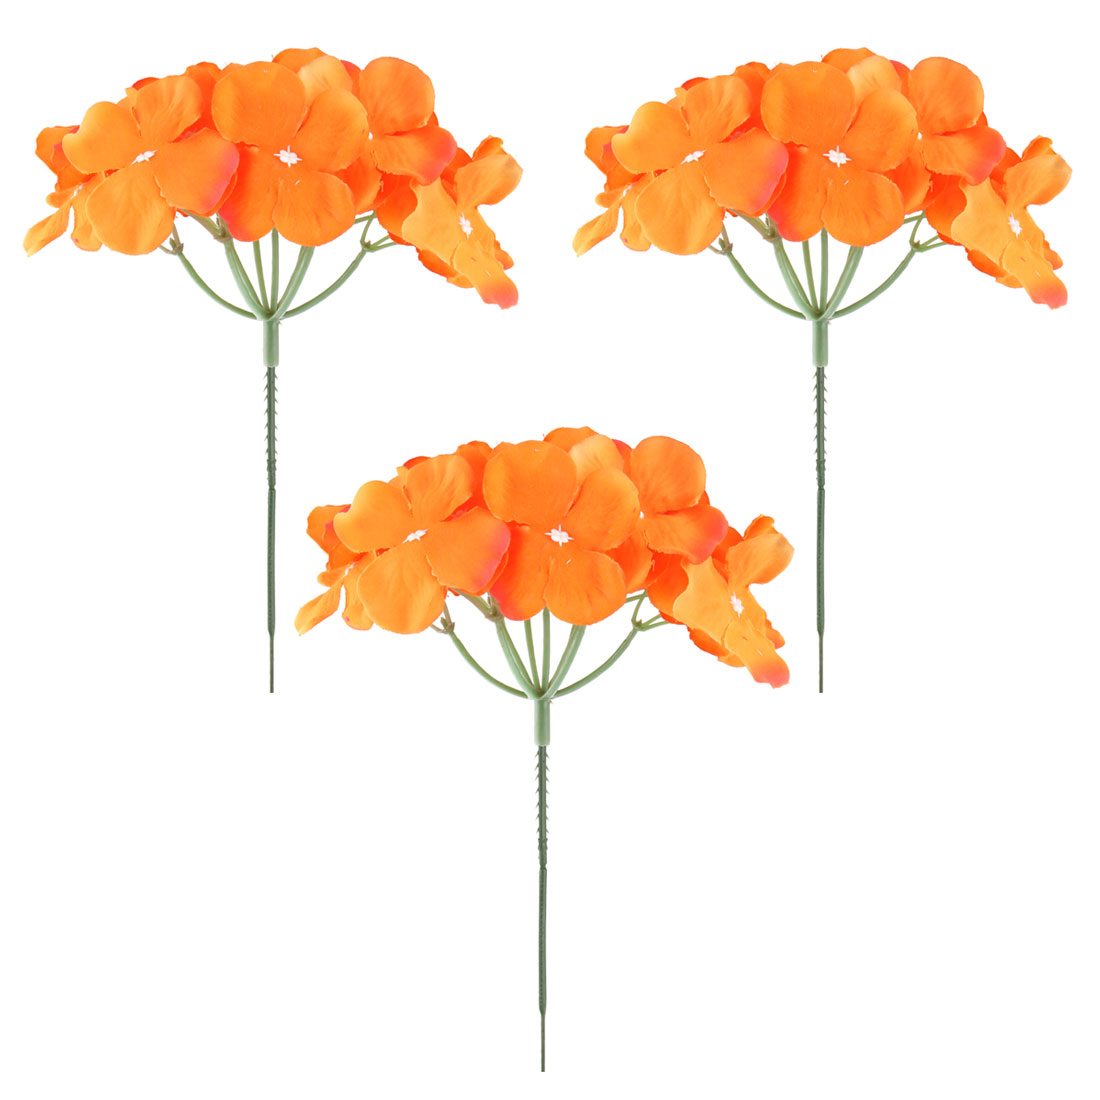 Wedding Fabric Emulation Artificial Flower Head Decorative Petals Craft Orange 3pcs